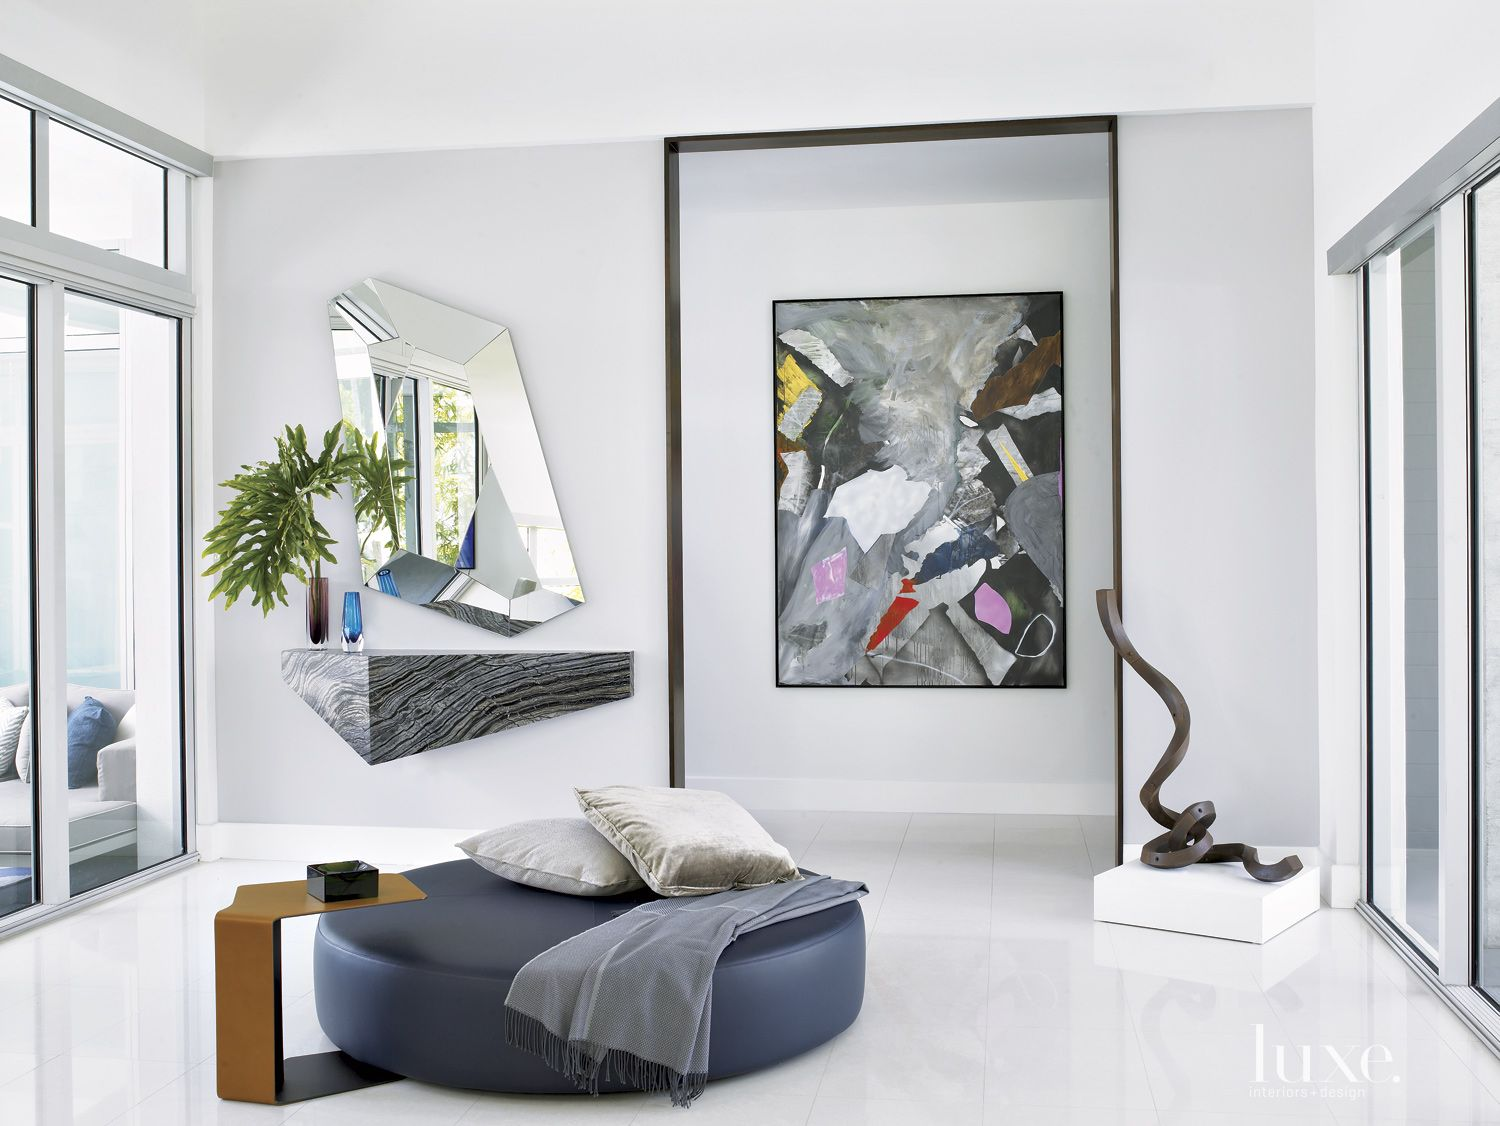 Modern White Gallery-Like Entry